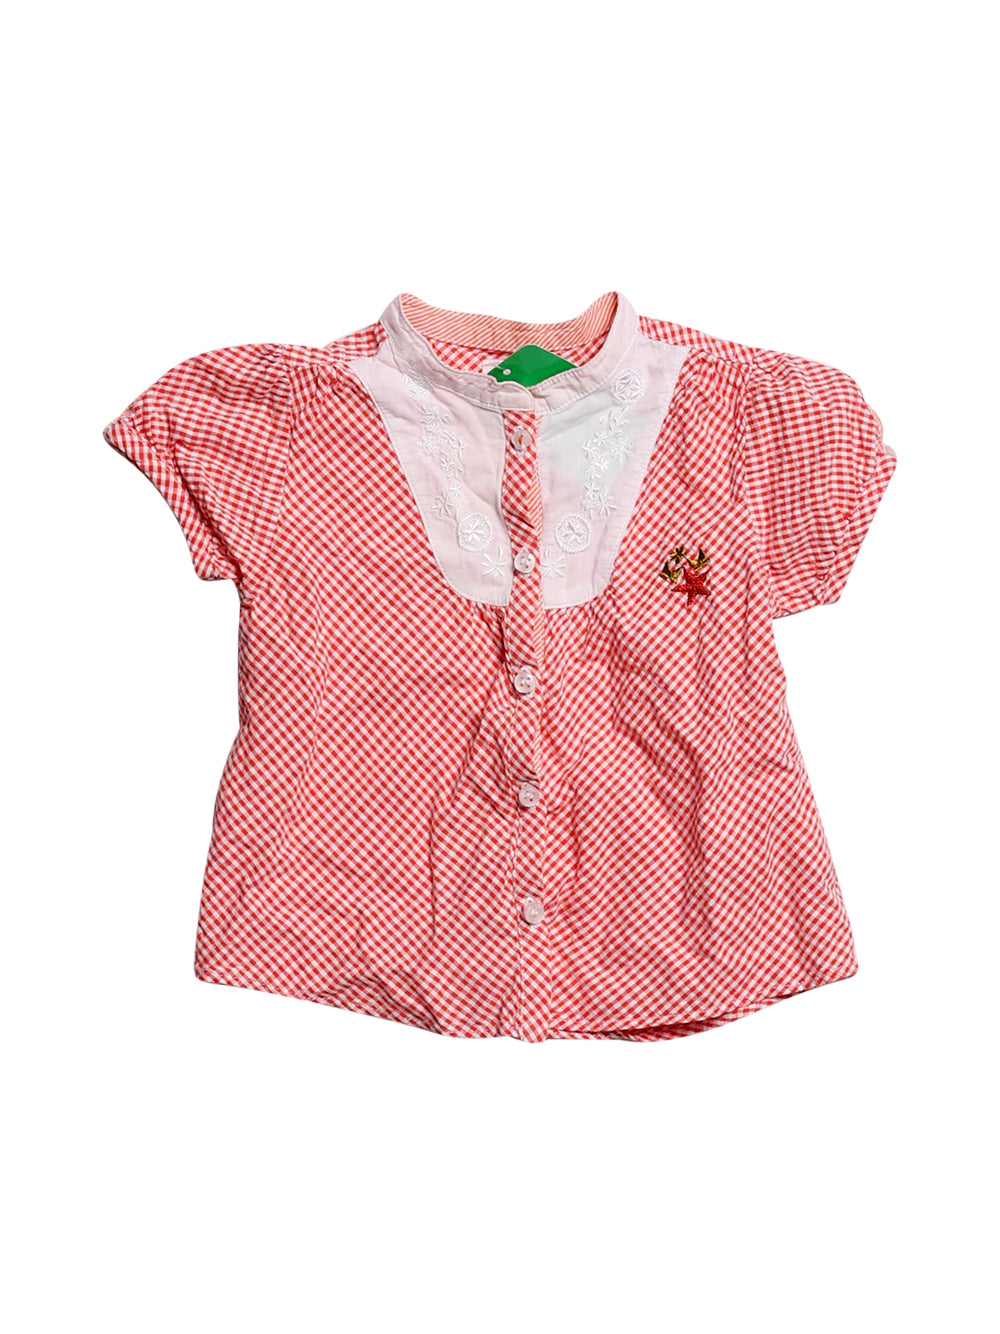 Front photo of Preloved Marèse Red Girl's shirt - size 12-18 mths